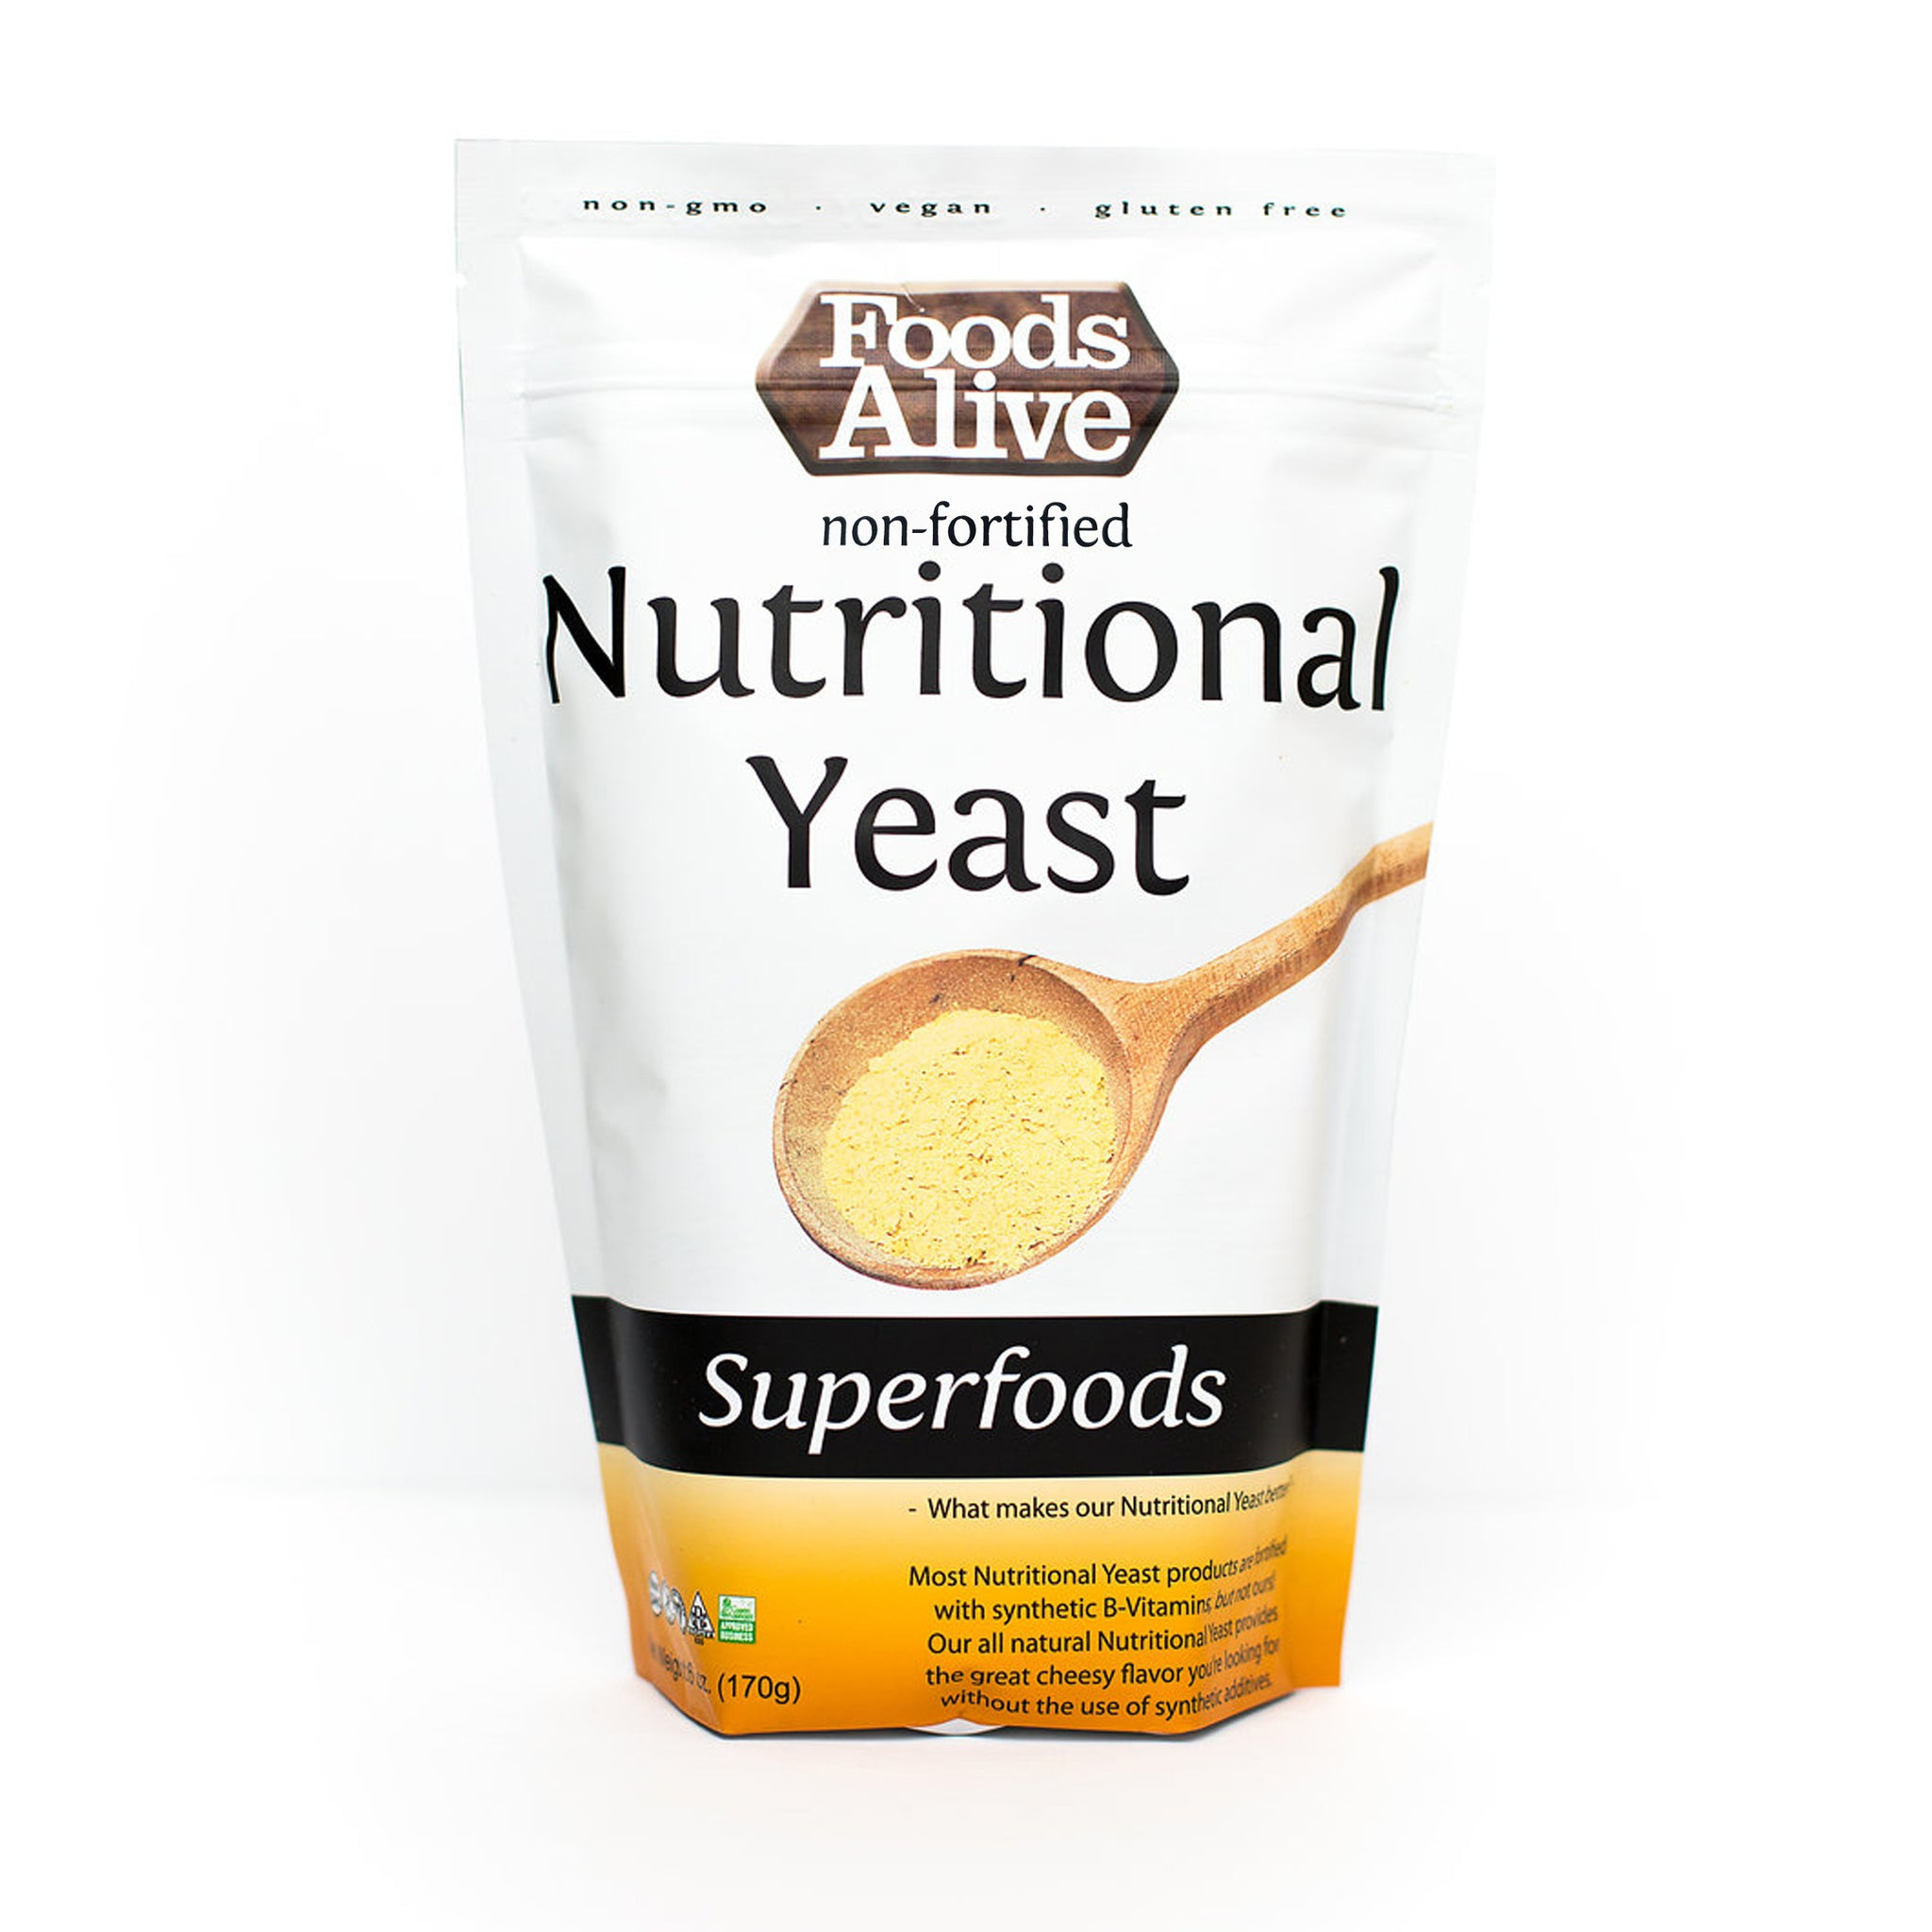 Foods Alive - Nutritional Yeast - Non-Fortified - Non-GMO - 6 oz - Front